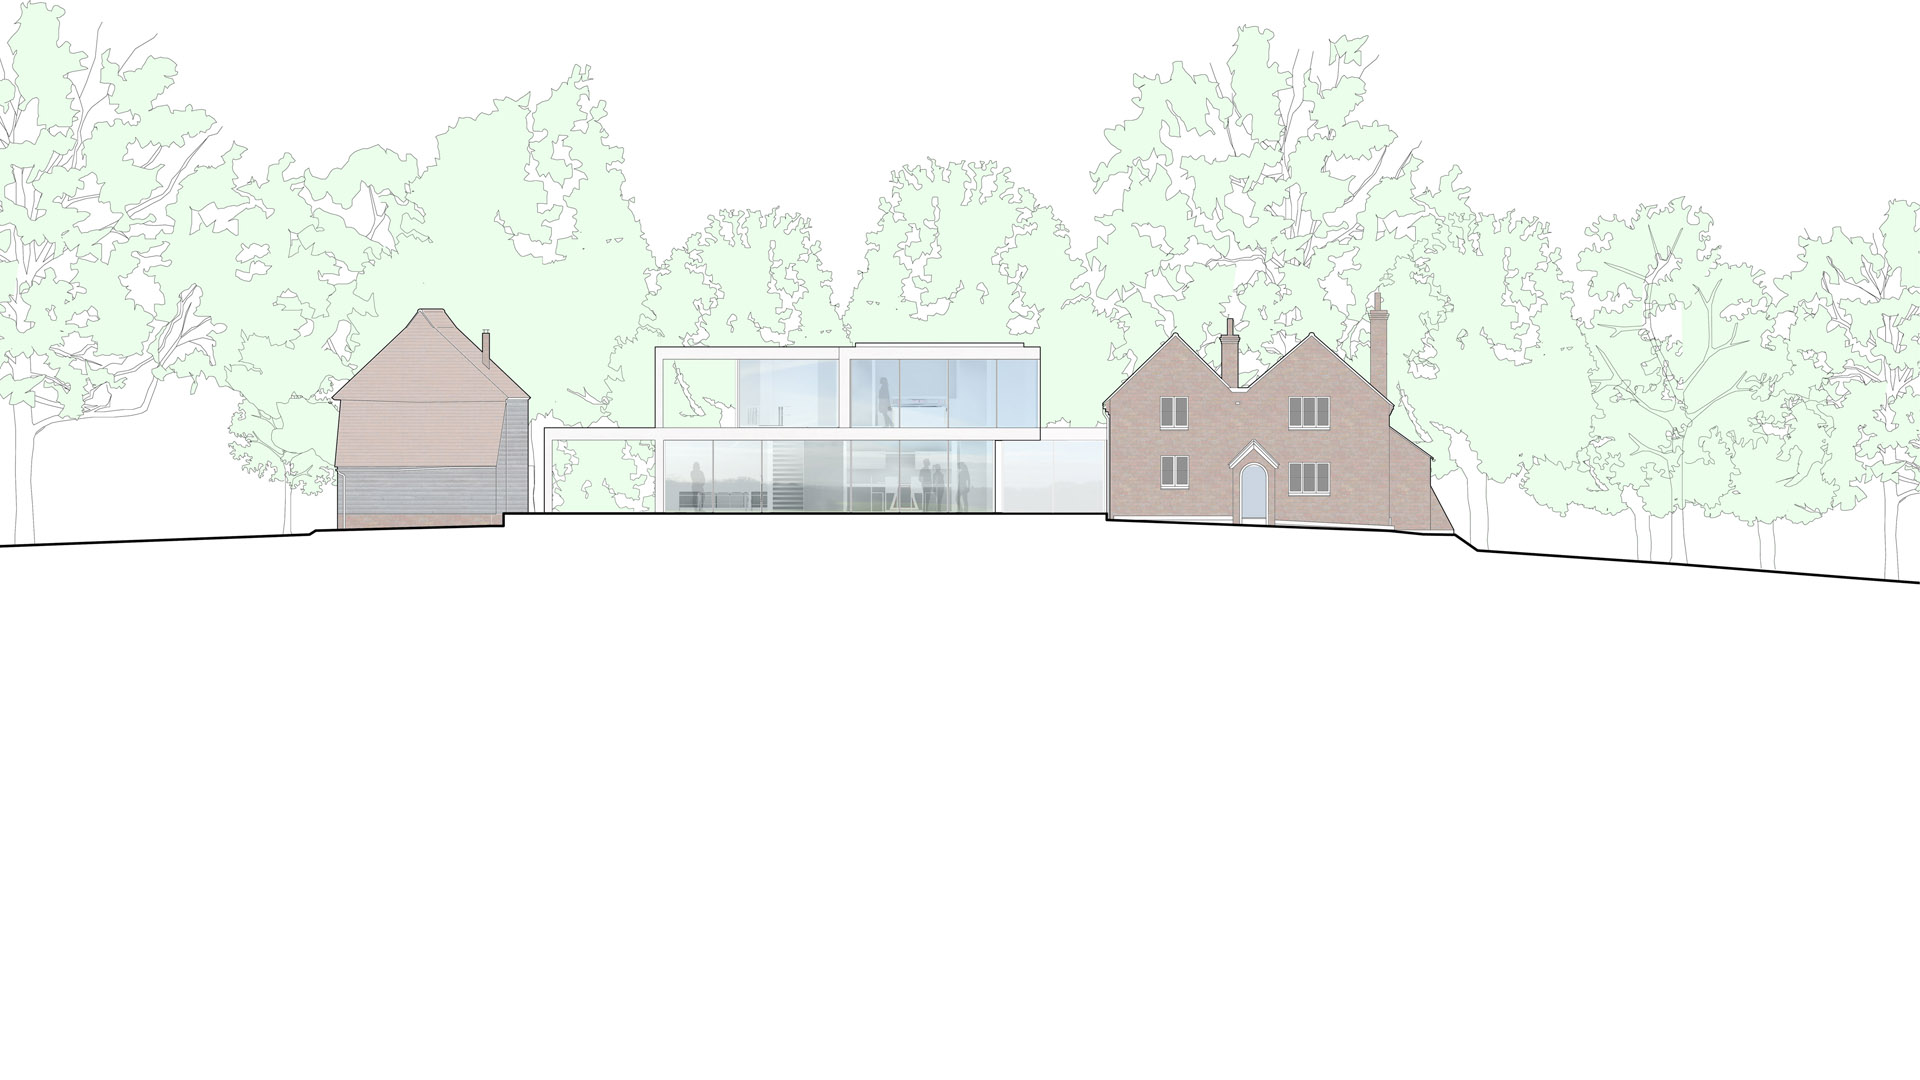 North Farm House south elevation in context flanked by an existing timber framed barn and a 19th century cottage.